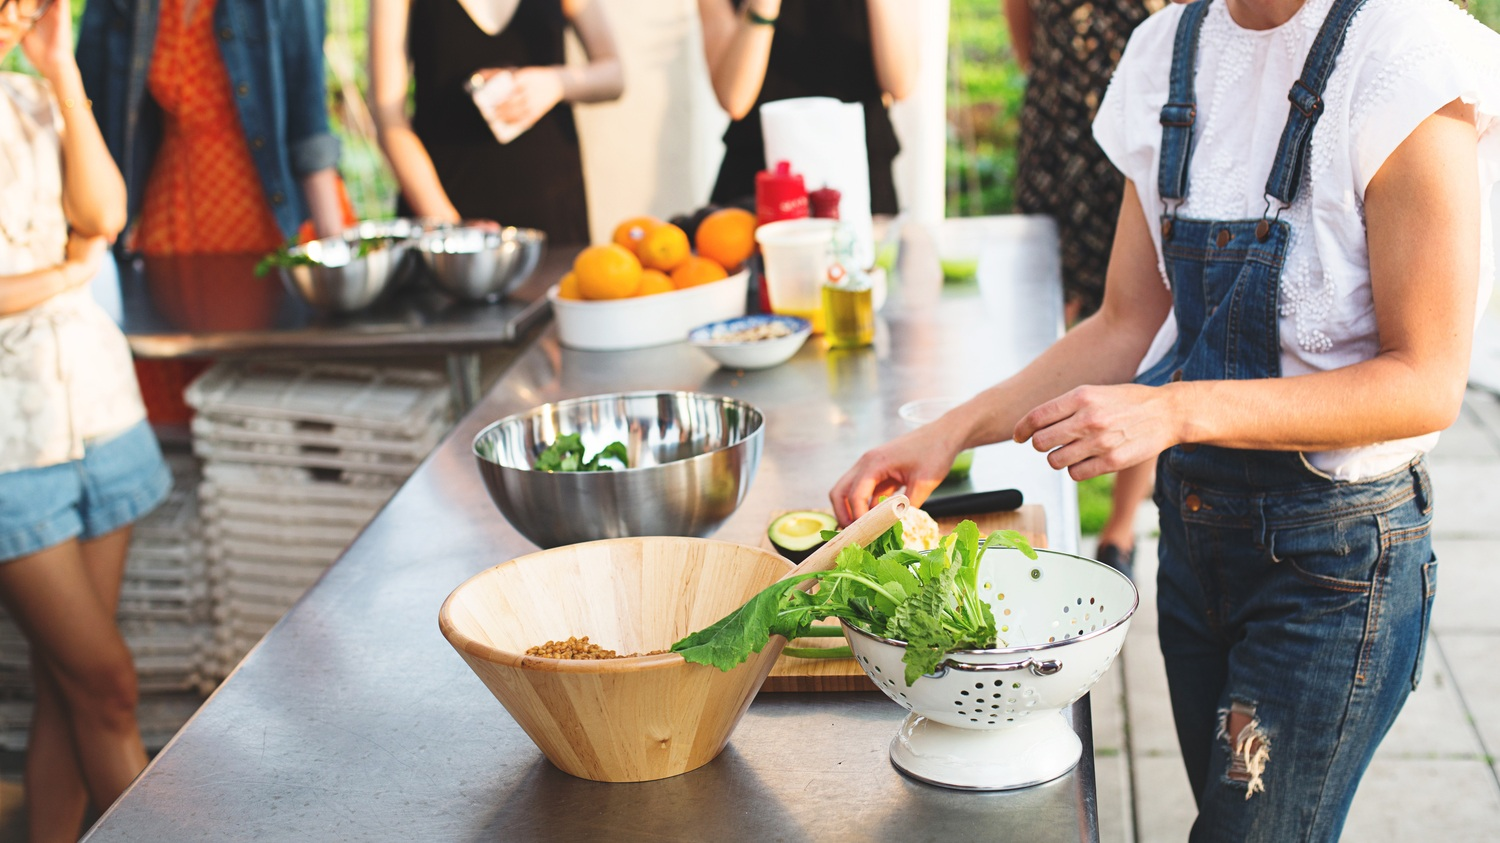 A Conscious Kitchen: Reducing Food Waste at Home - May 20, 2019 | 6:30 PM - 8:30 PMReducing the carbon footprint of your home begins in the kitchen! In this workshop, we'll walk through how to assess your home kitchen for opportunities to minimize waste, saving you money and opening up a world of delicious possibilities.We'll go beyond the usual carrot top pesto, so you come away with concrete ideas for how you can realistically make practical changes to your day-to-day habits that will have a meaningful impact on the amount of waste you generate.Facilitated by Anastasia Cole PlakiasCo-Founder and Vice President of Brooklyn Grange Rooftop FarmAn accomplished public speaker, award-winning writer, and published photographer, Anastasia is a passionate and outspoken crusader for fresh, healthy foods and greener, more sustainable cities.